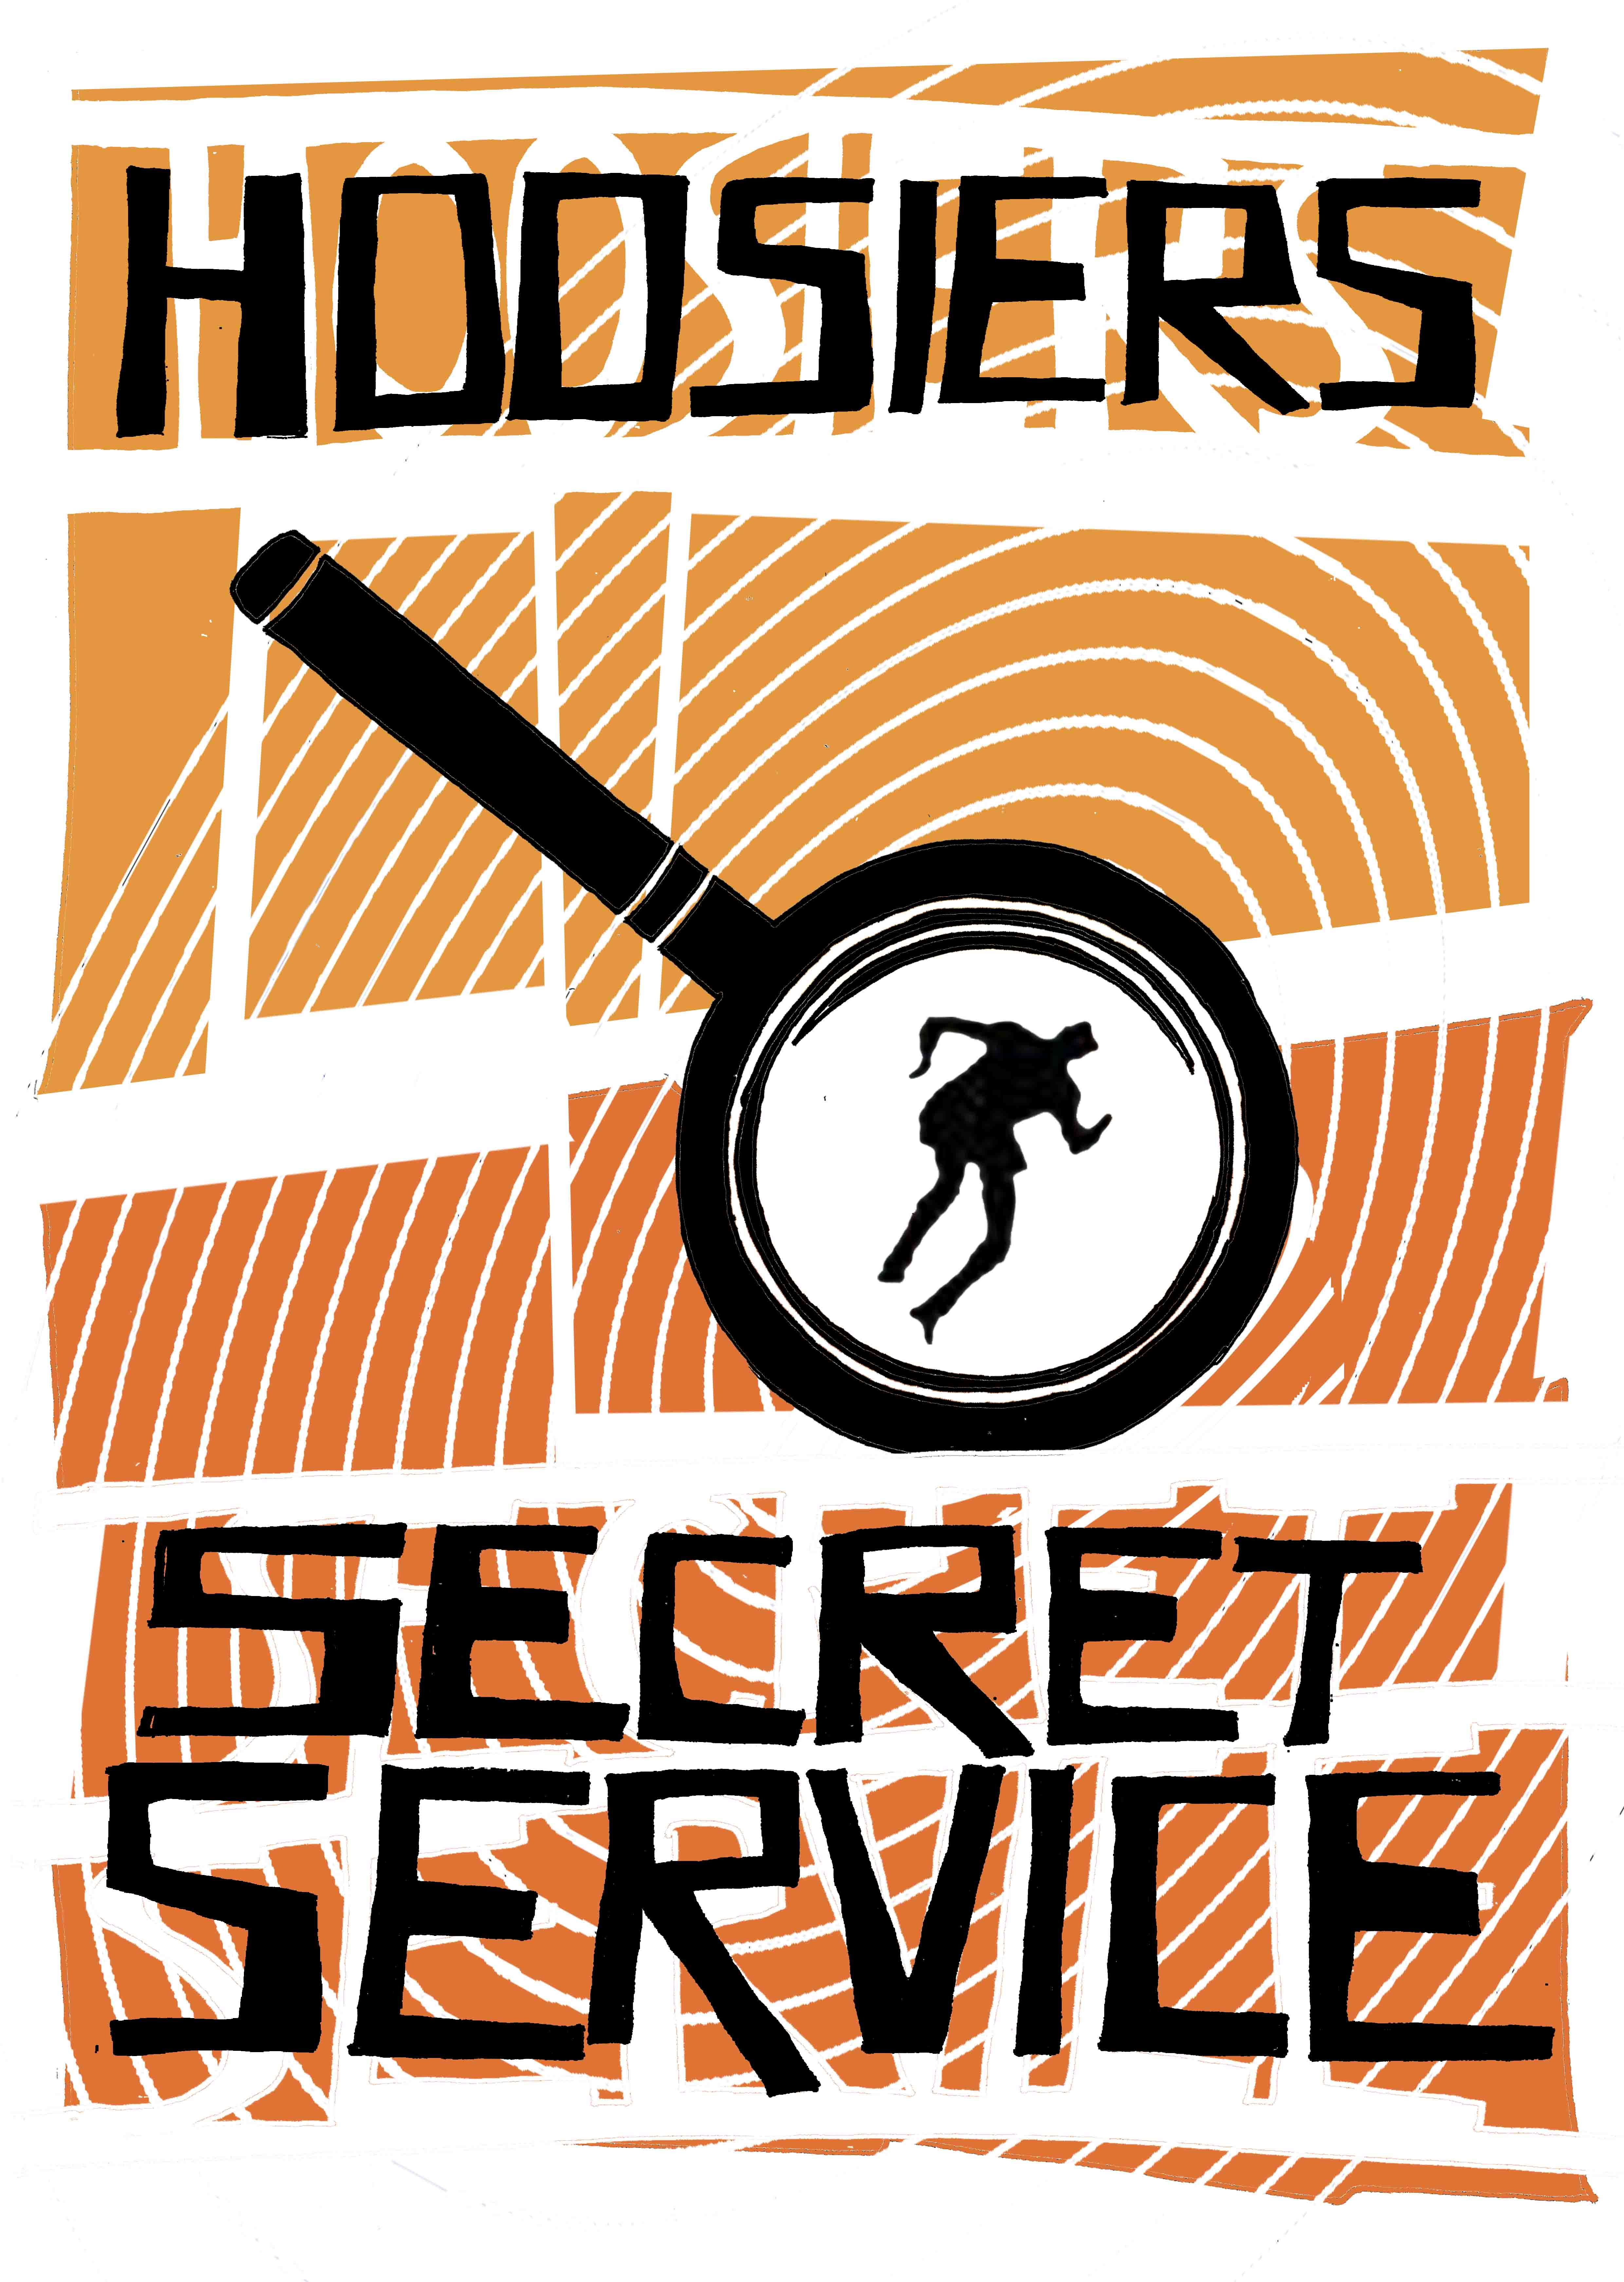 Secret Service Hand-printed Poster - The Hoosiers